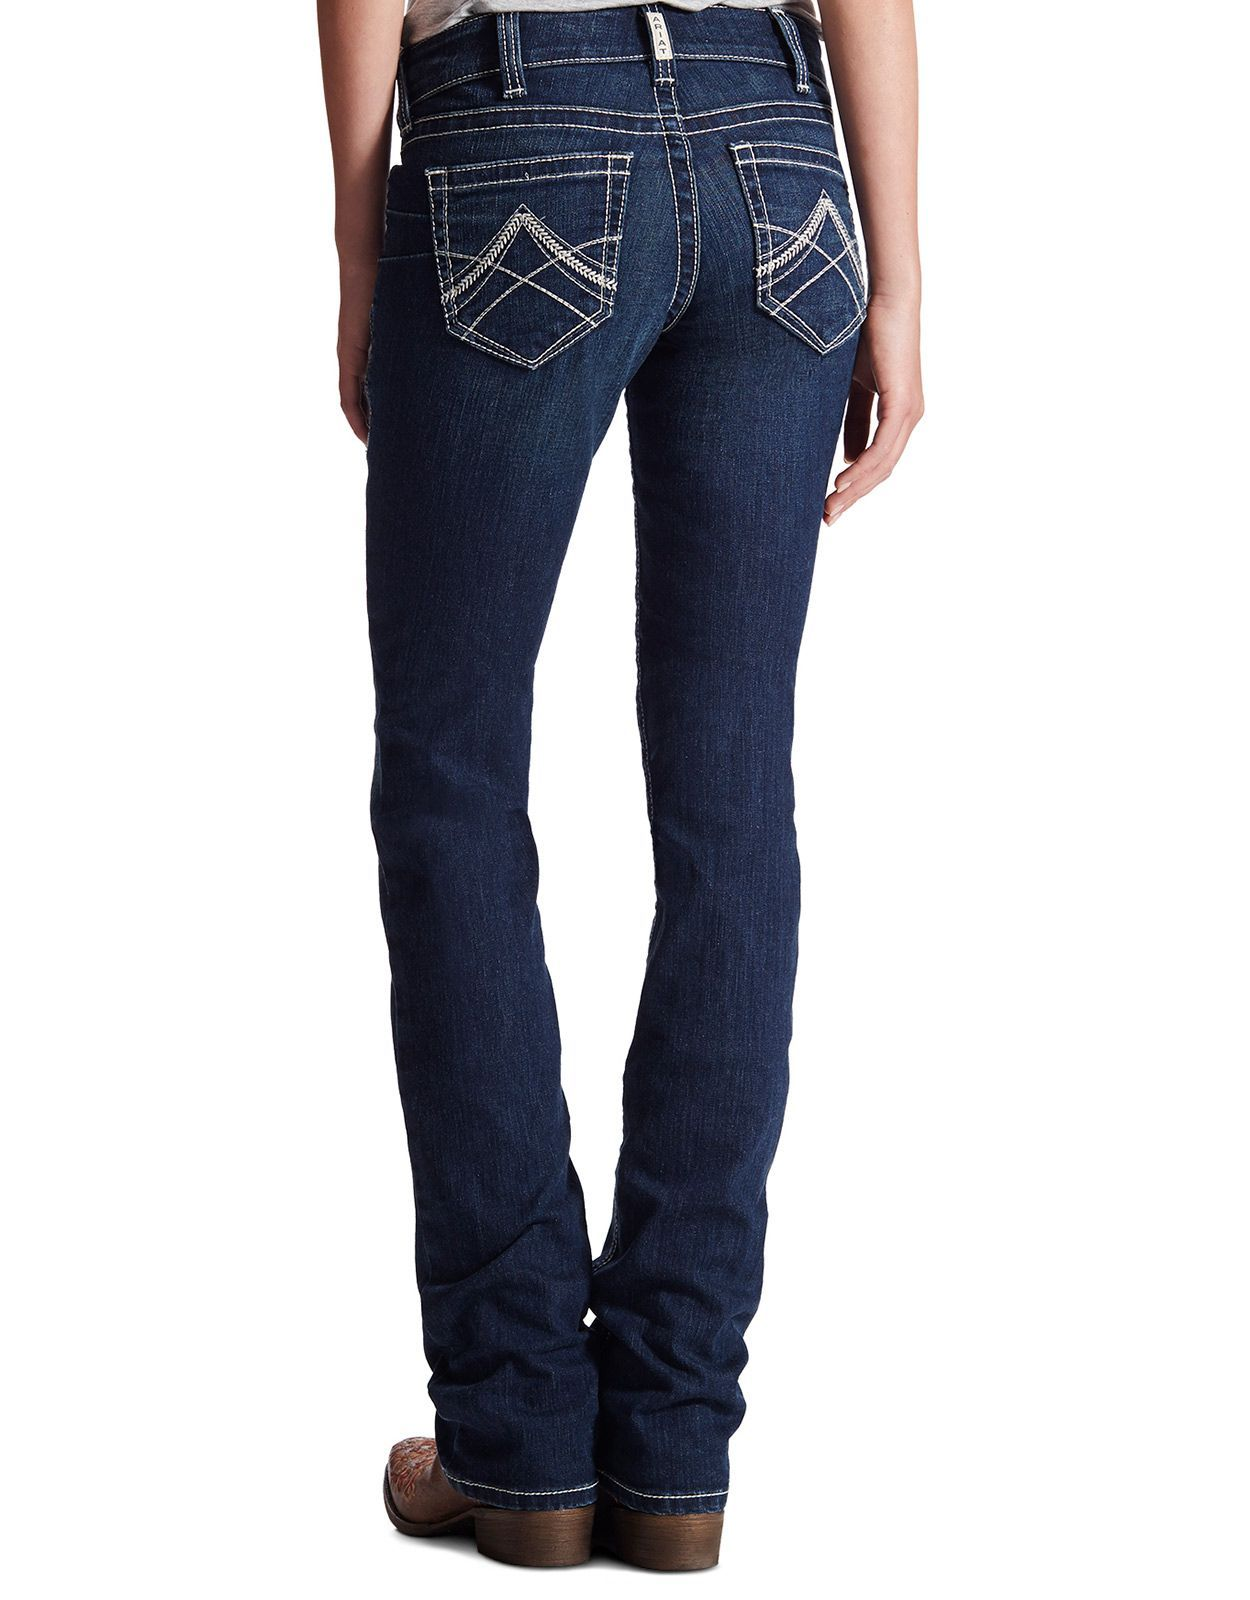 Ariat Women's R.E.A.L. Mid Rise Slim Stackable Straight Leg Jeans - Ocean